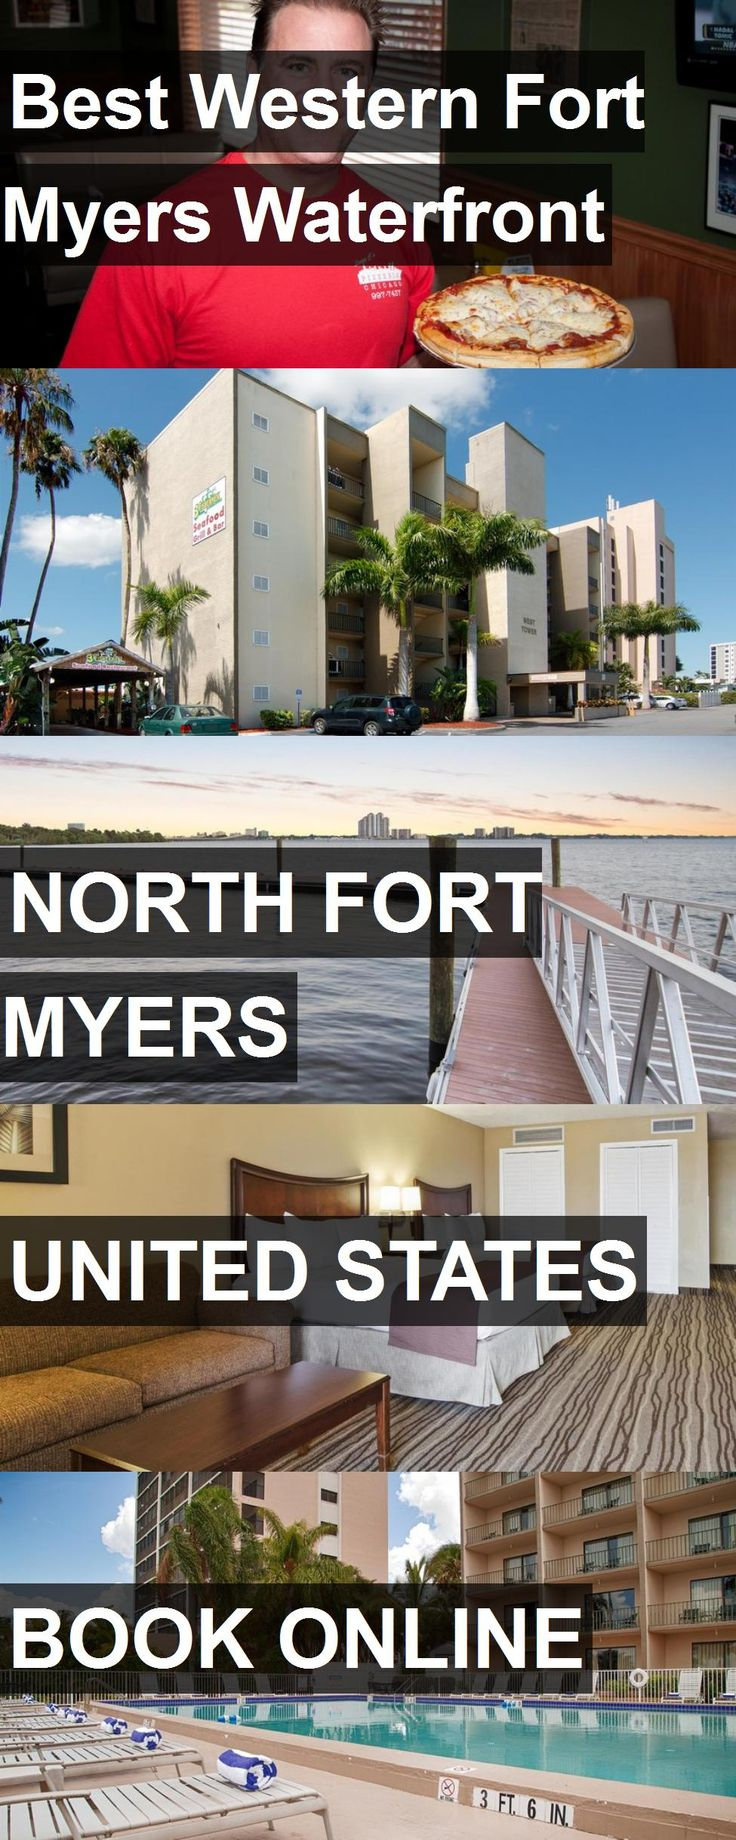 Hotel Best Western Fort Myers Waterfront in North Fort Myers, United States. For more information, photos, reviews and best prices please follow the link. #UnitedStates #NorthFortMyers #travel #vacation #hotel